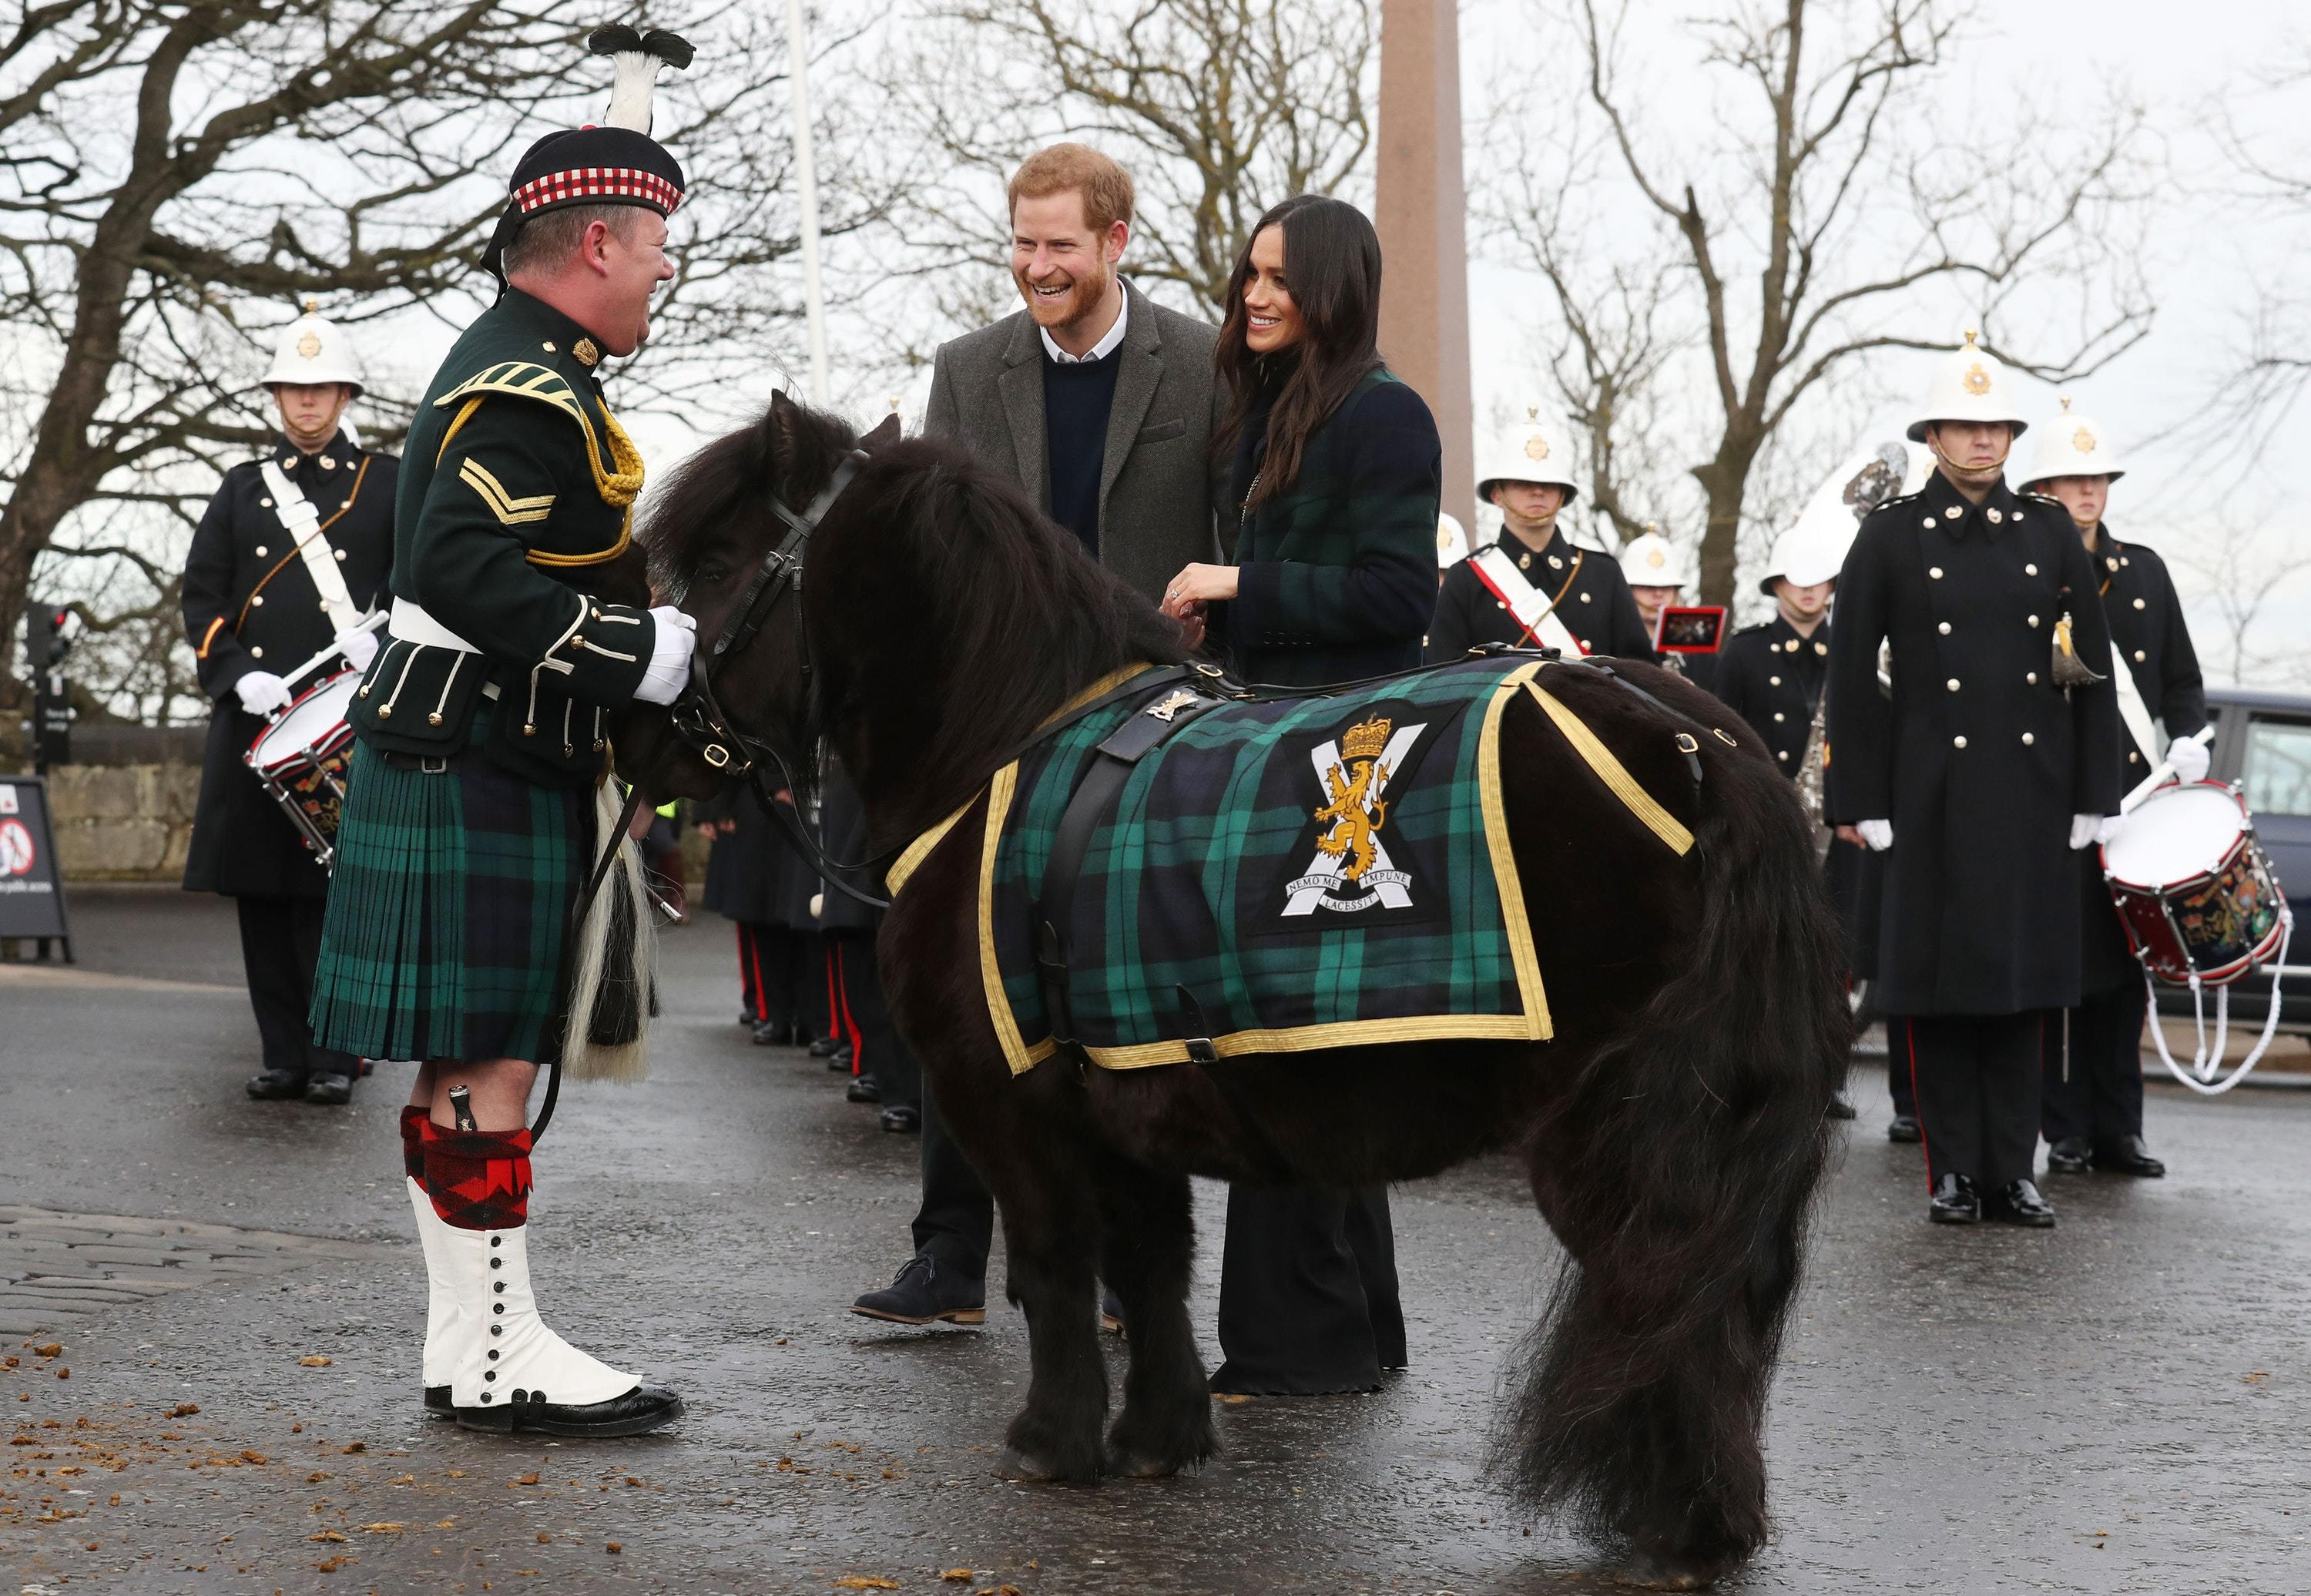 Harry and Meghan in Edinburgh tpday